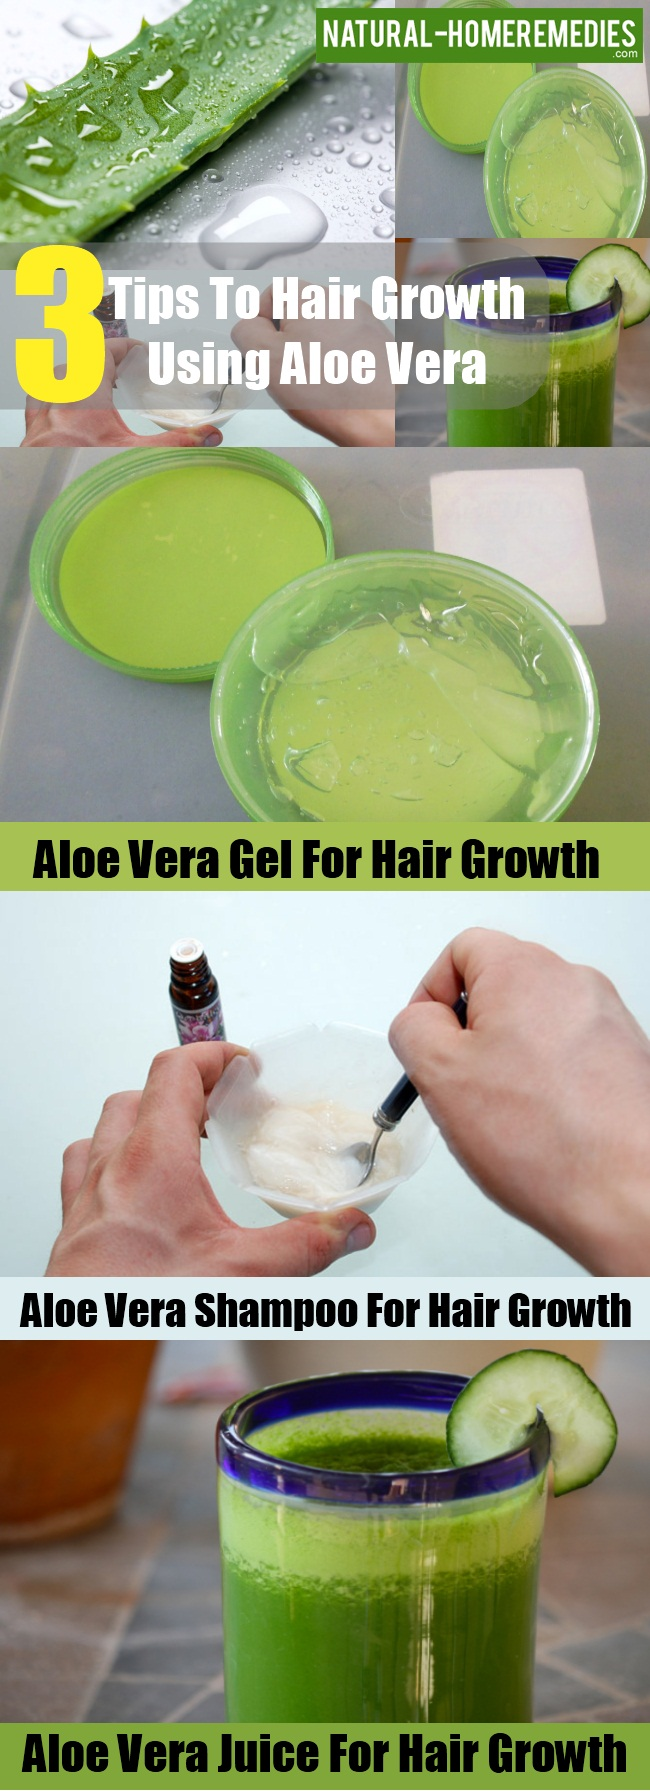 Hair Growth Using Aloe Vera